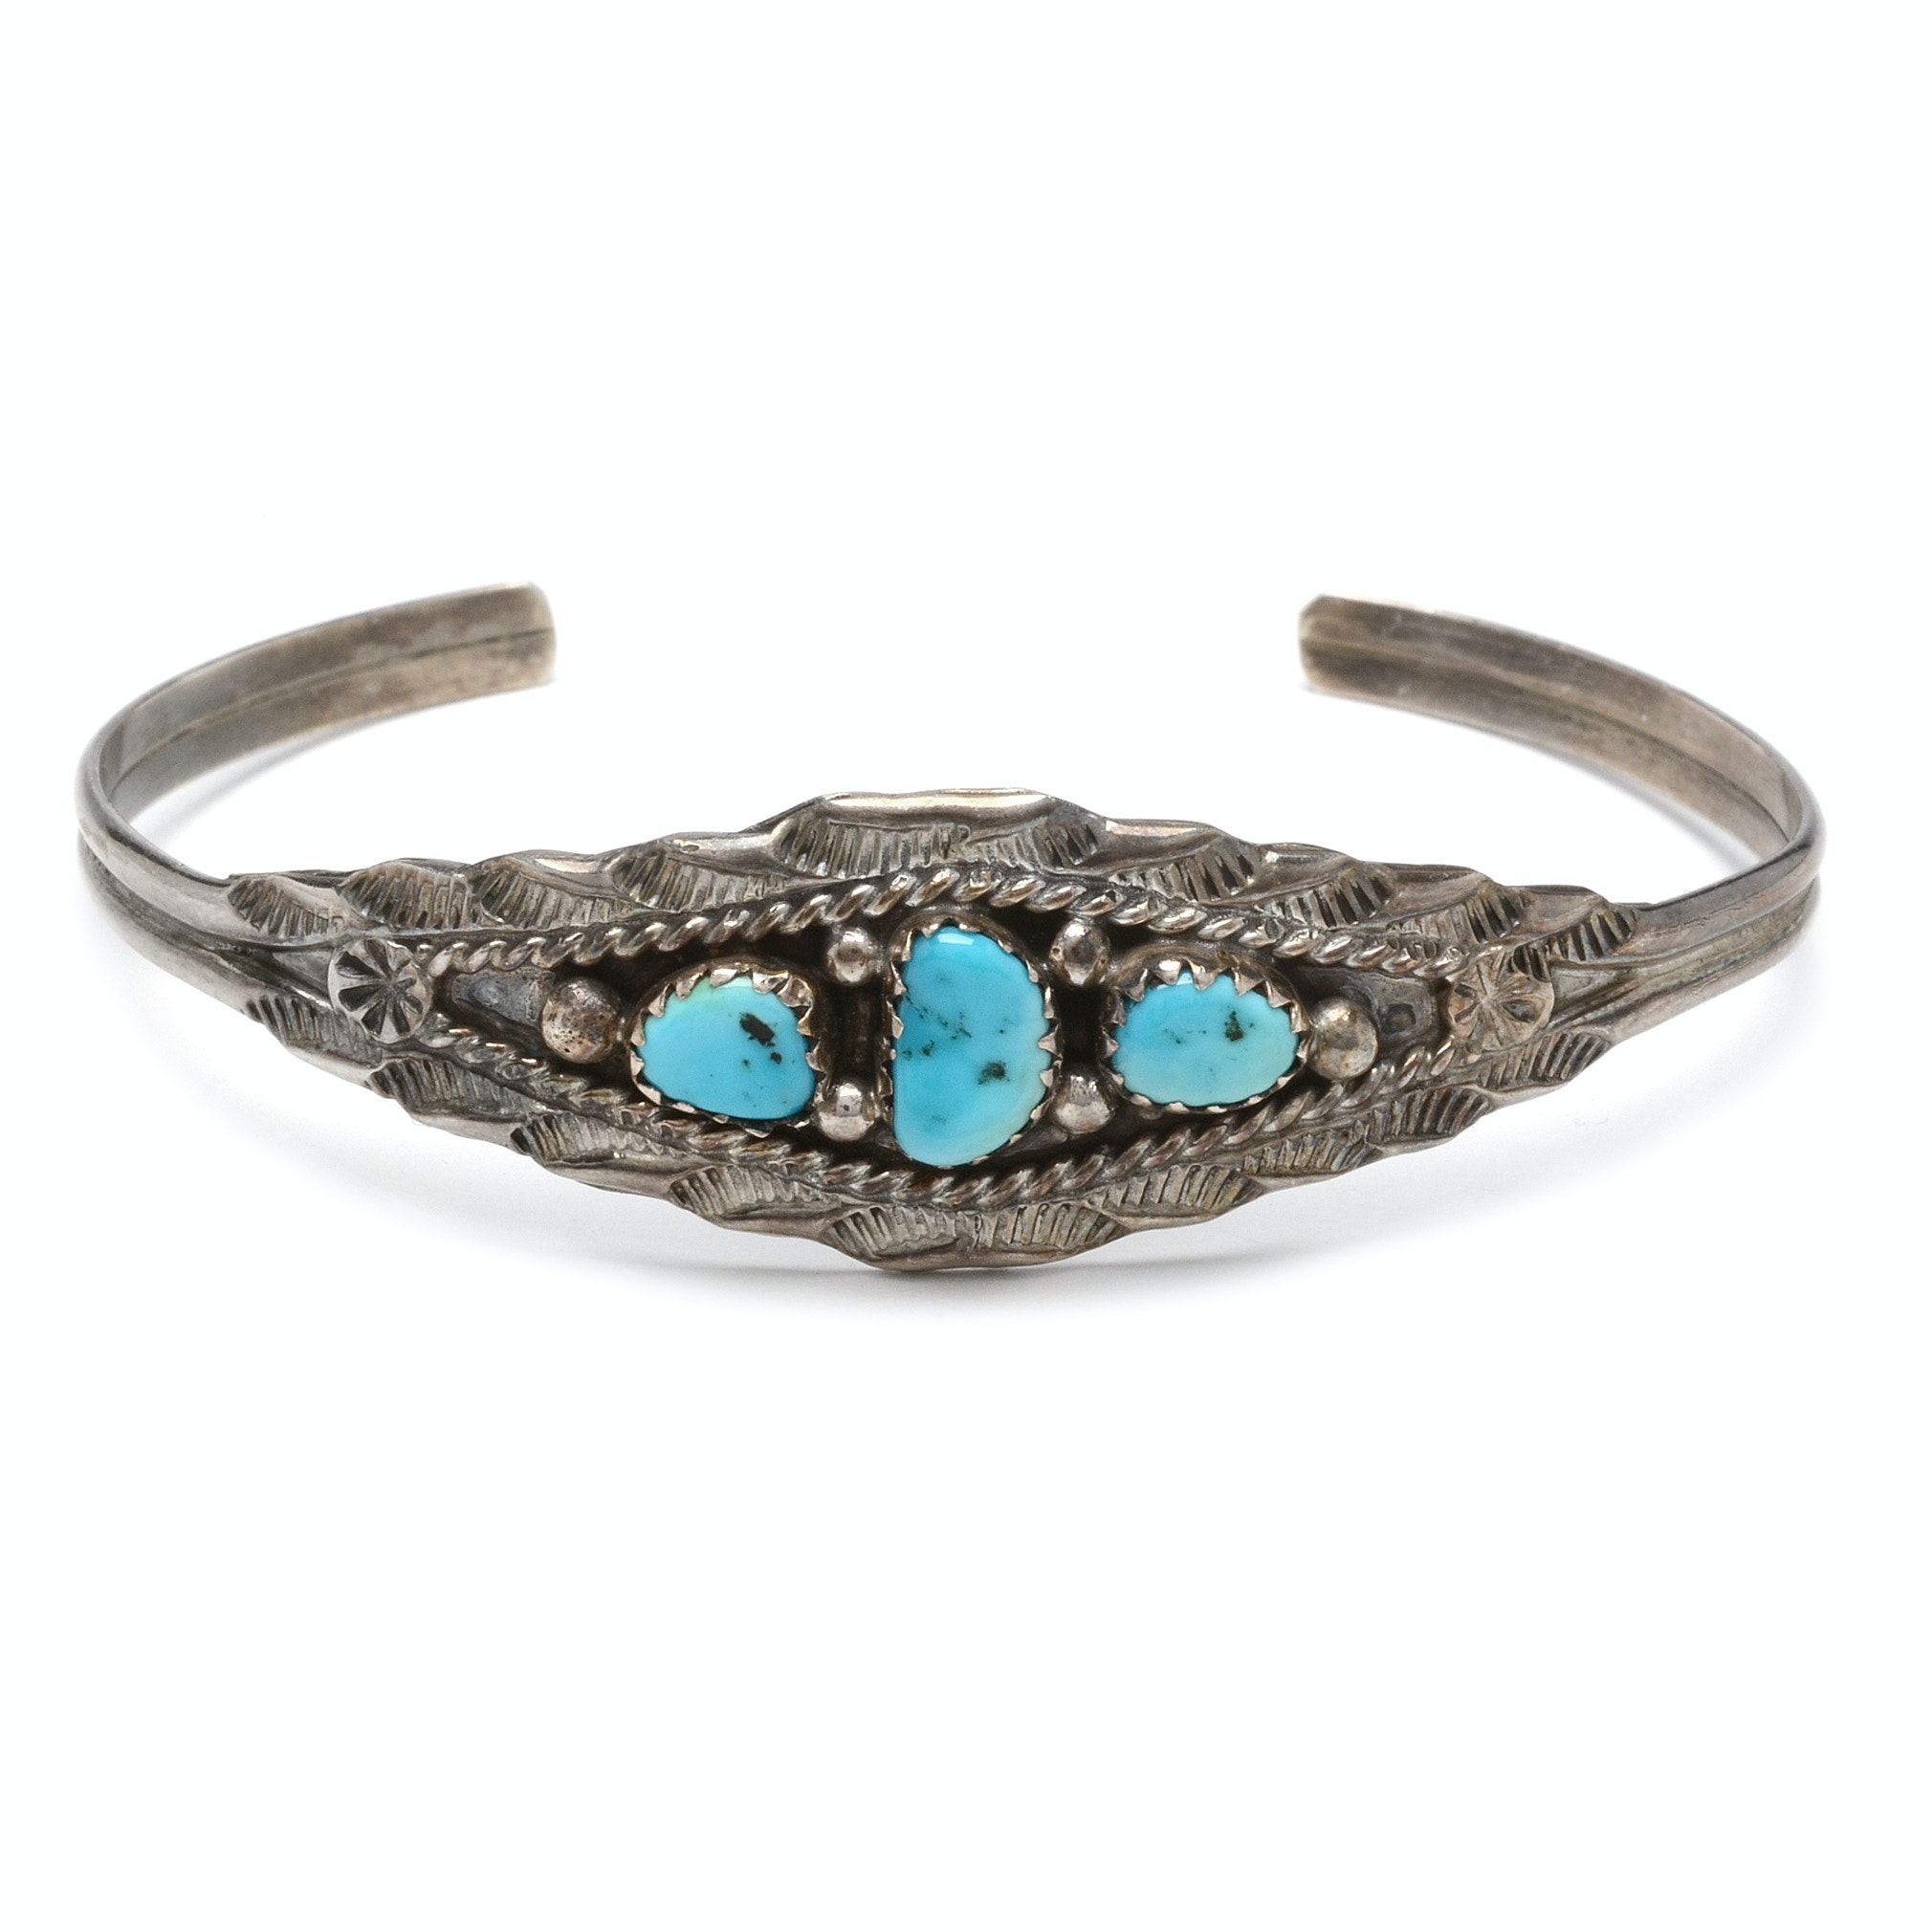 Signed Sterling Silver and Turquoise Southwestern Style Cuff Bracelet